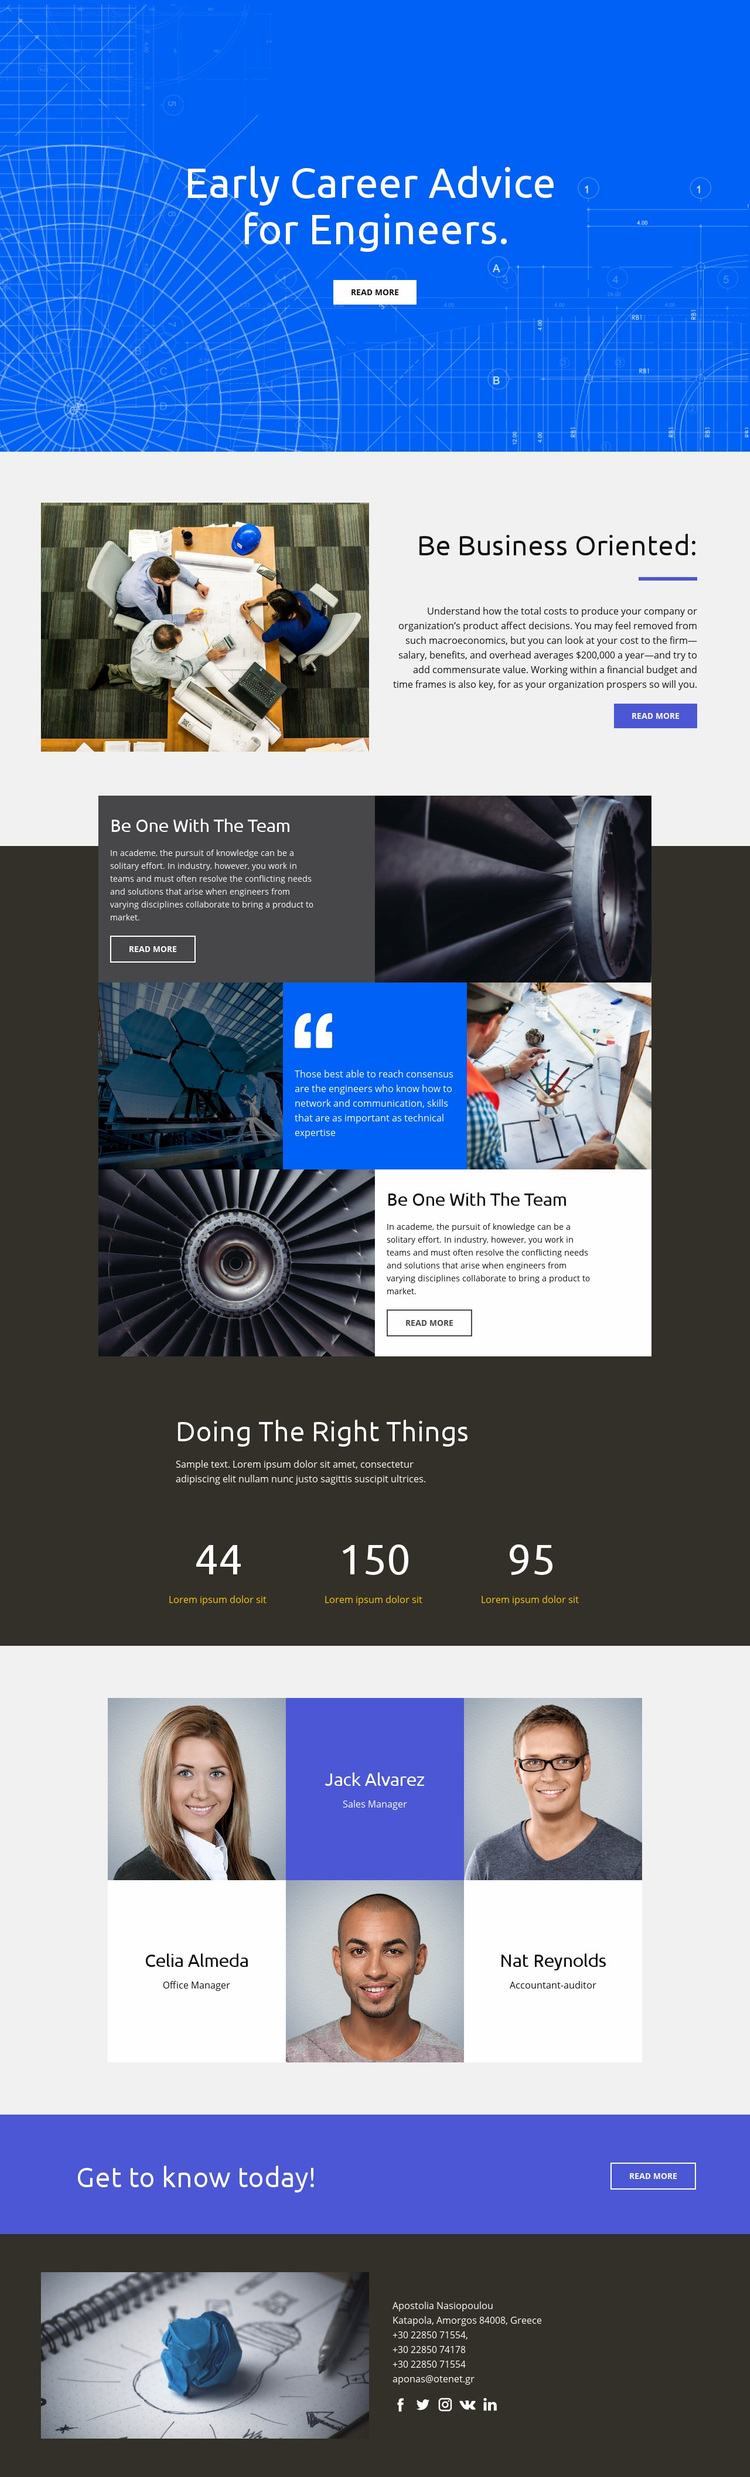 Advice for Engineers Web Page Designer